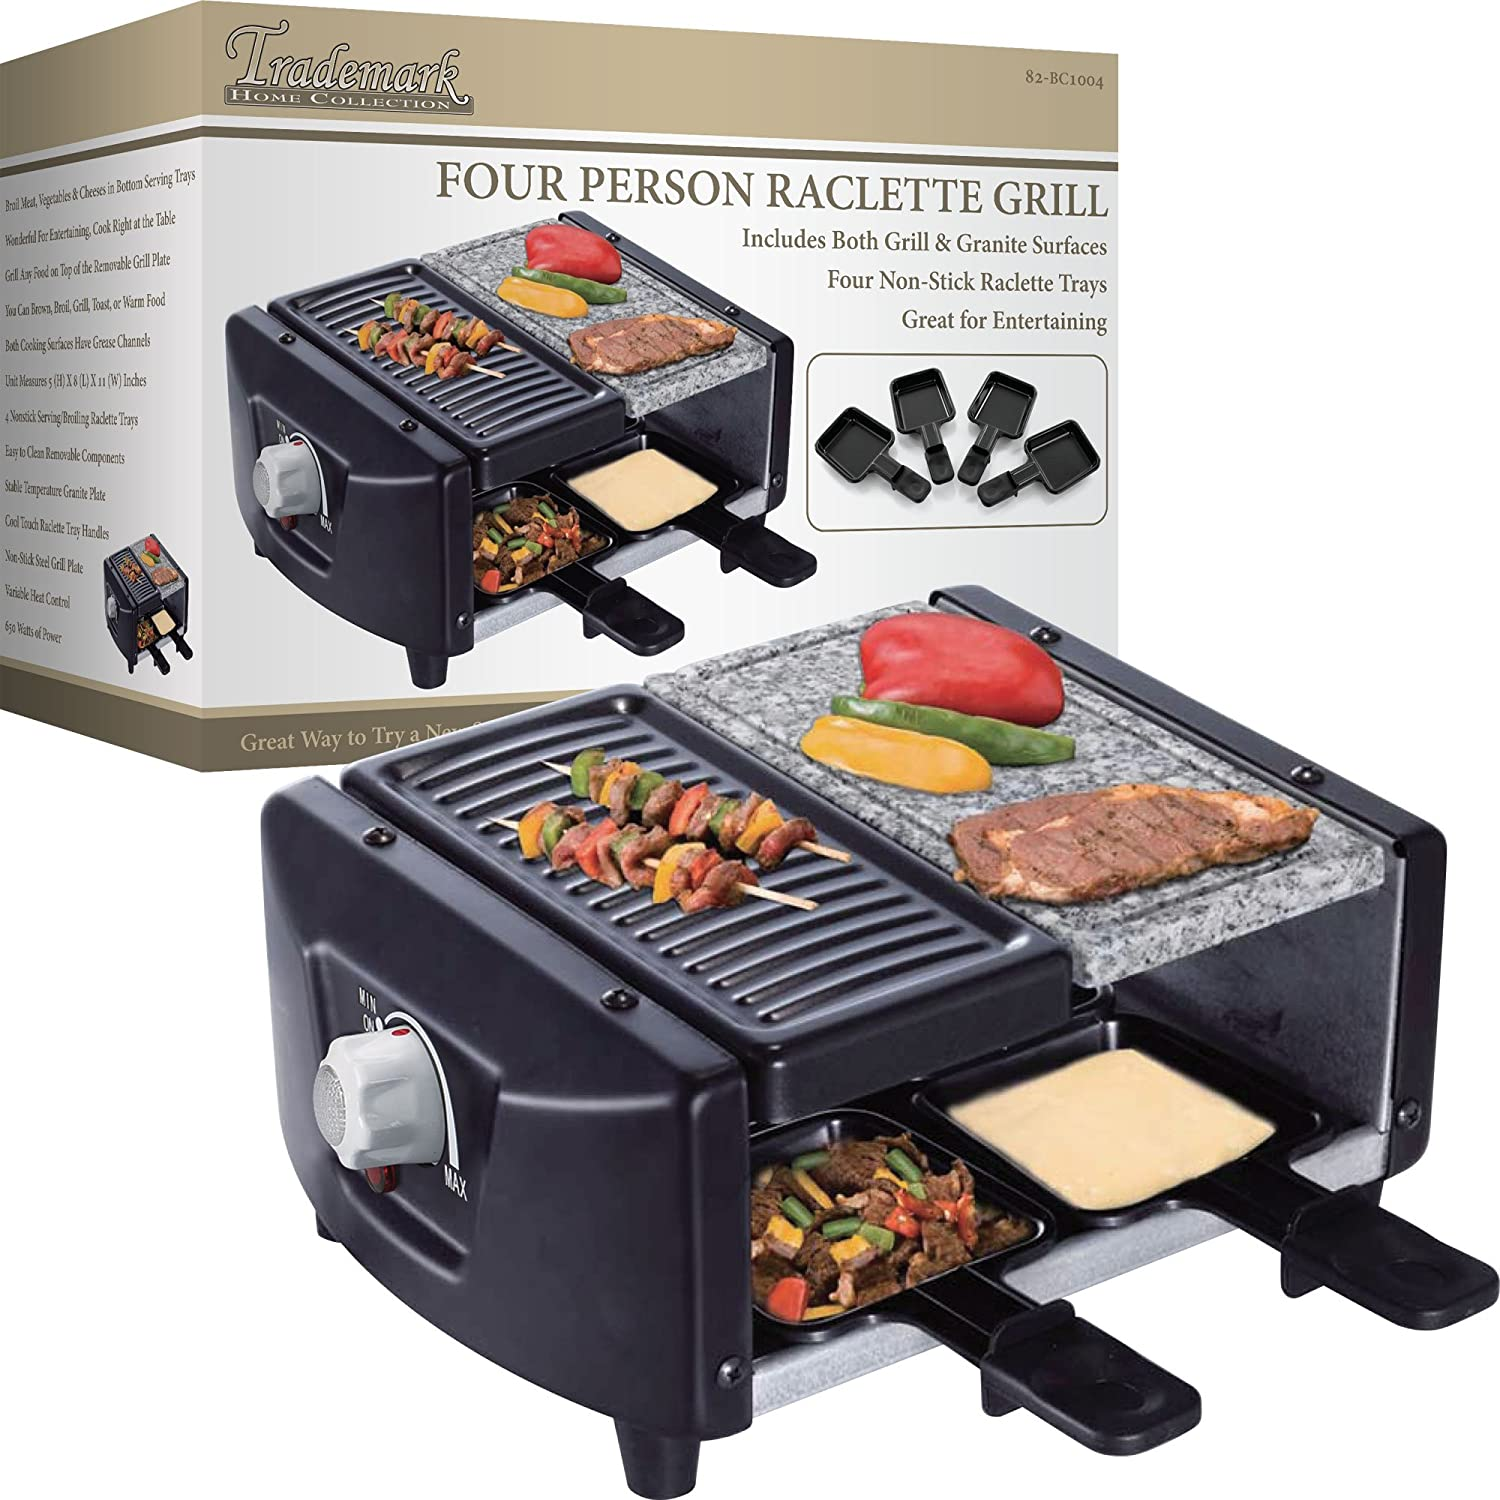 Chef Buddy 82-BC1004 4-Person Raclette Grill